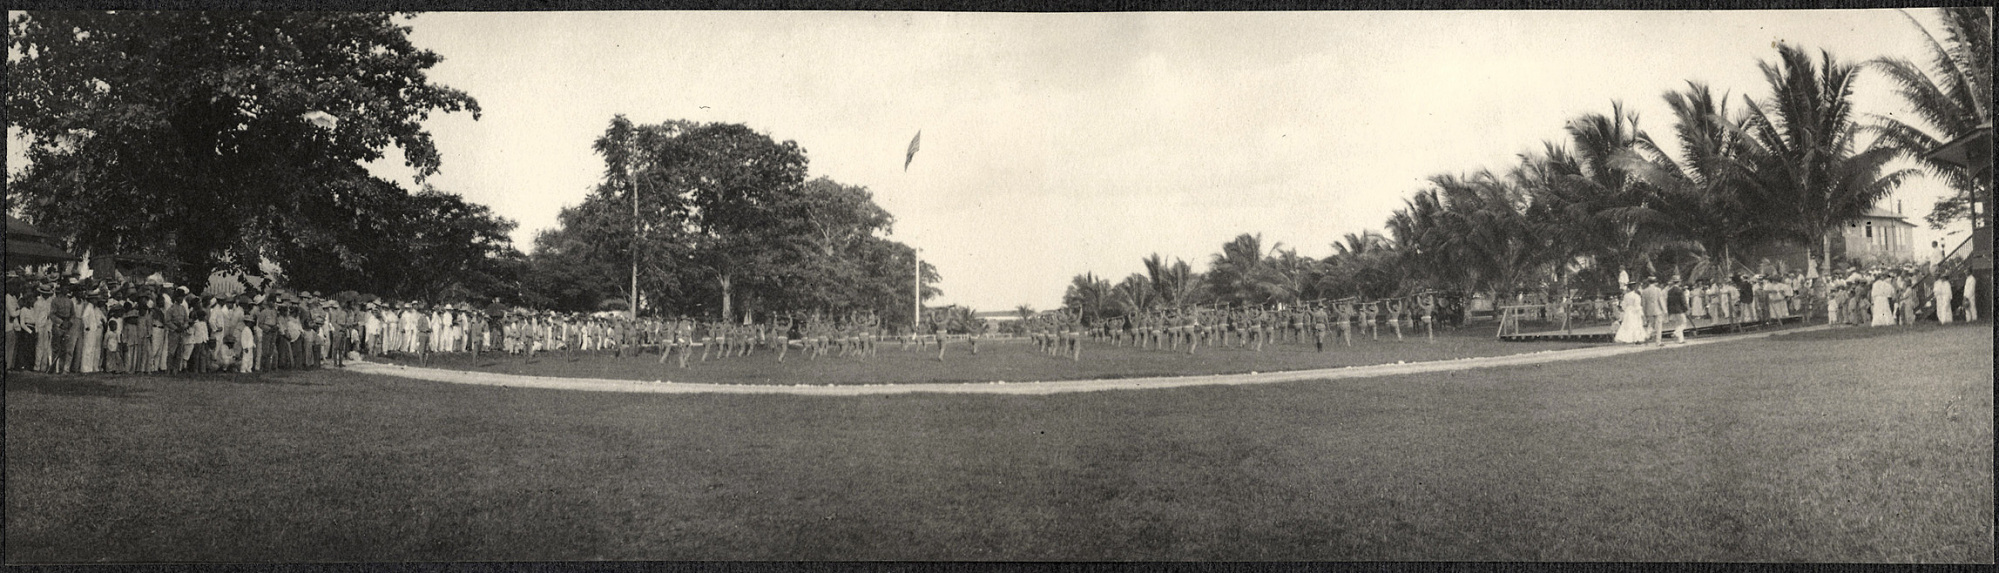 Zamboanga: American soldiers in formation on Zamboanga parade grounds